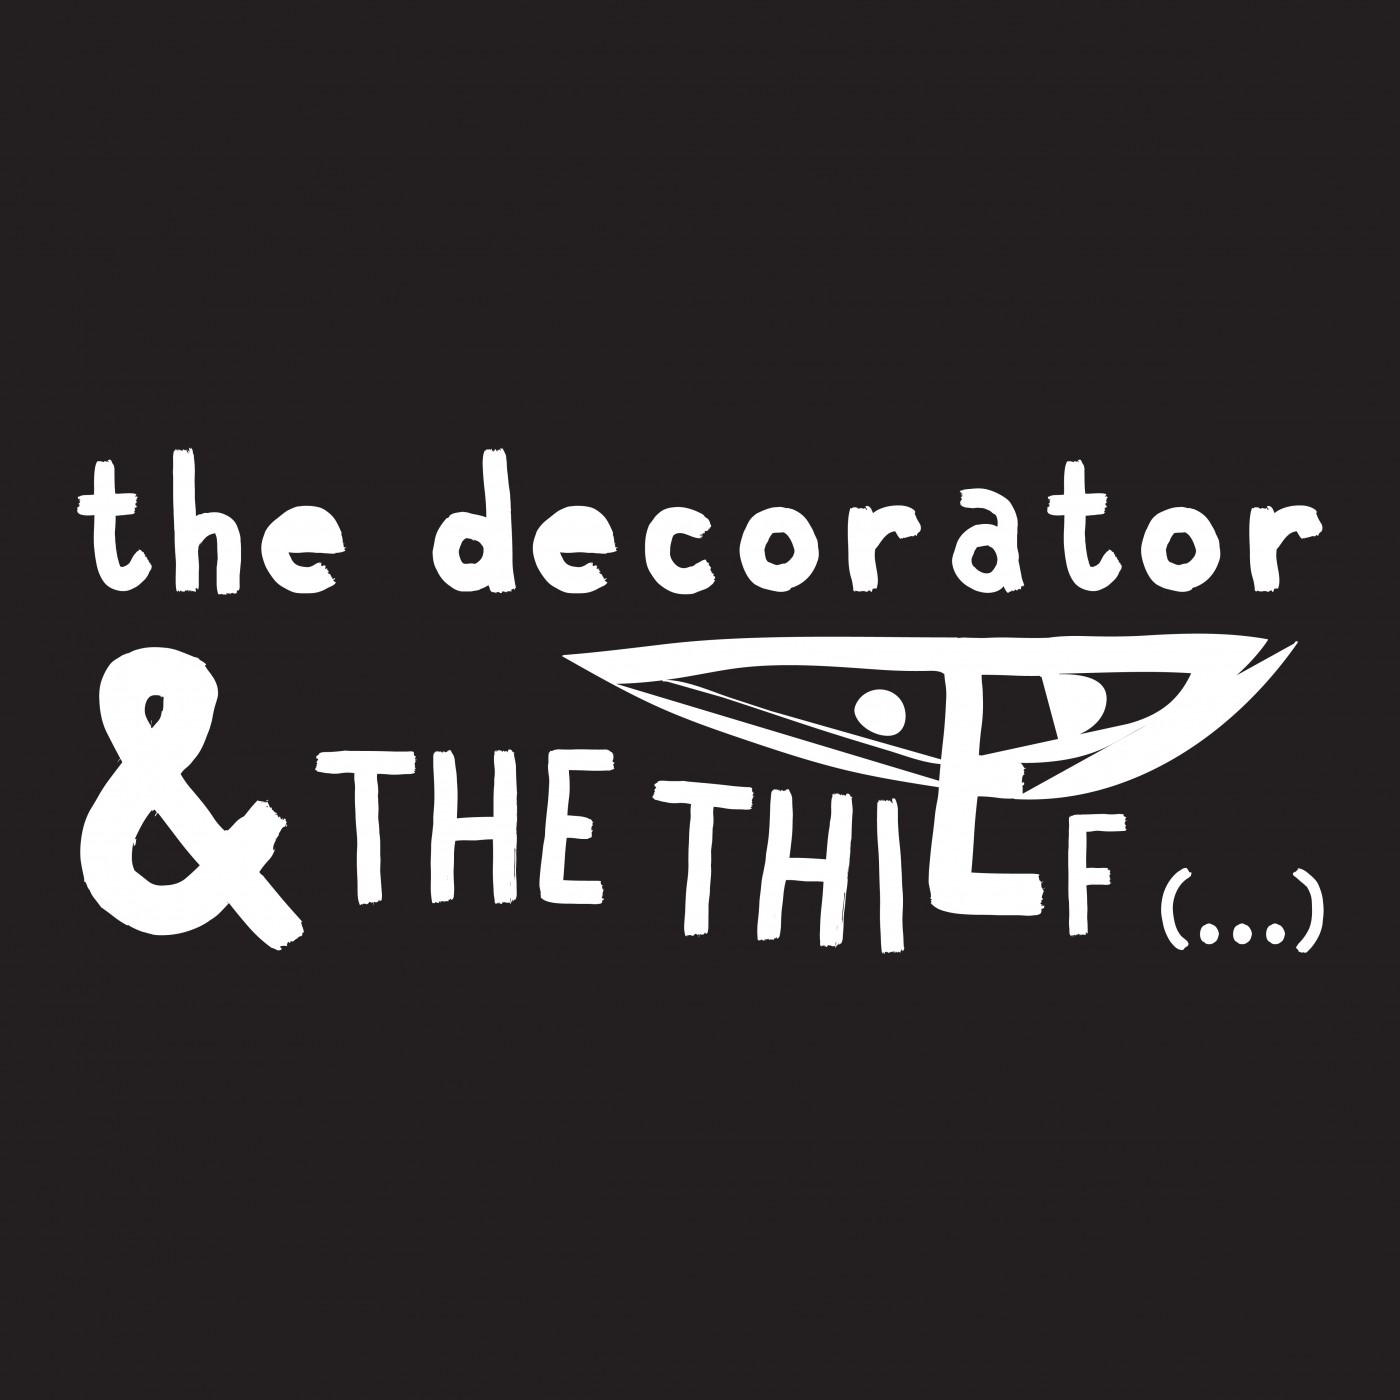 The Decorator and the Thief